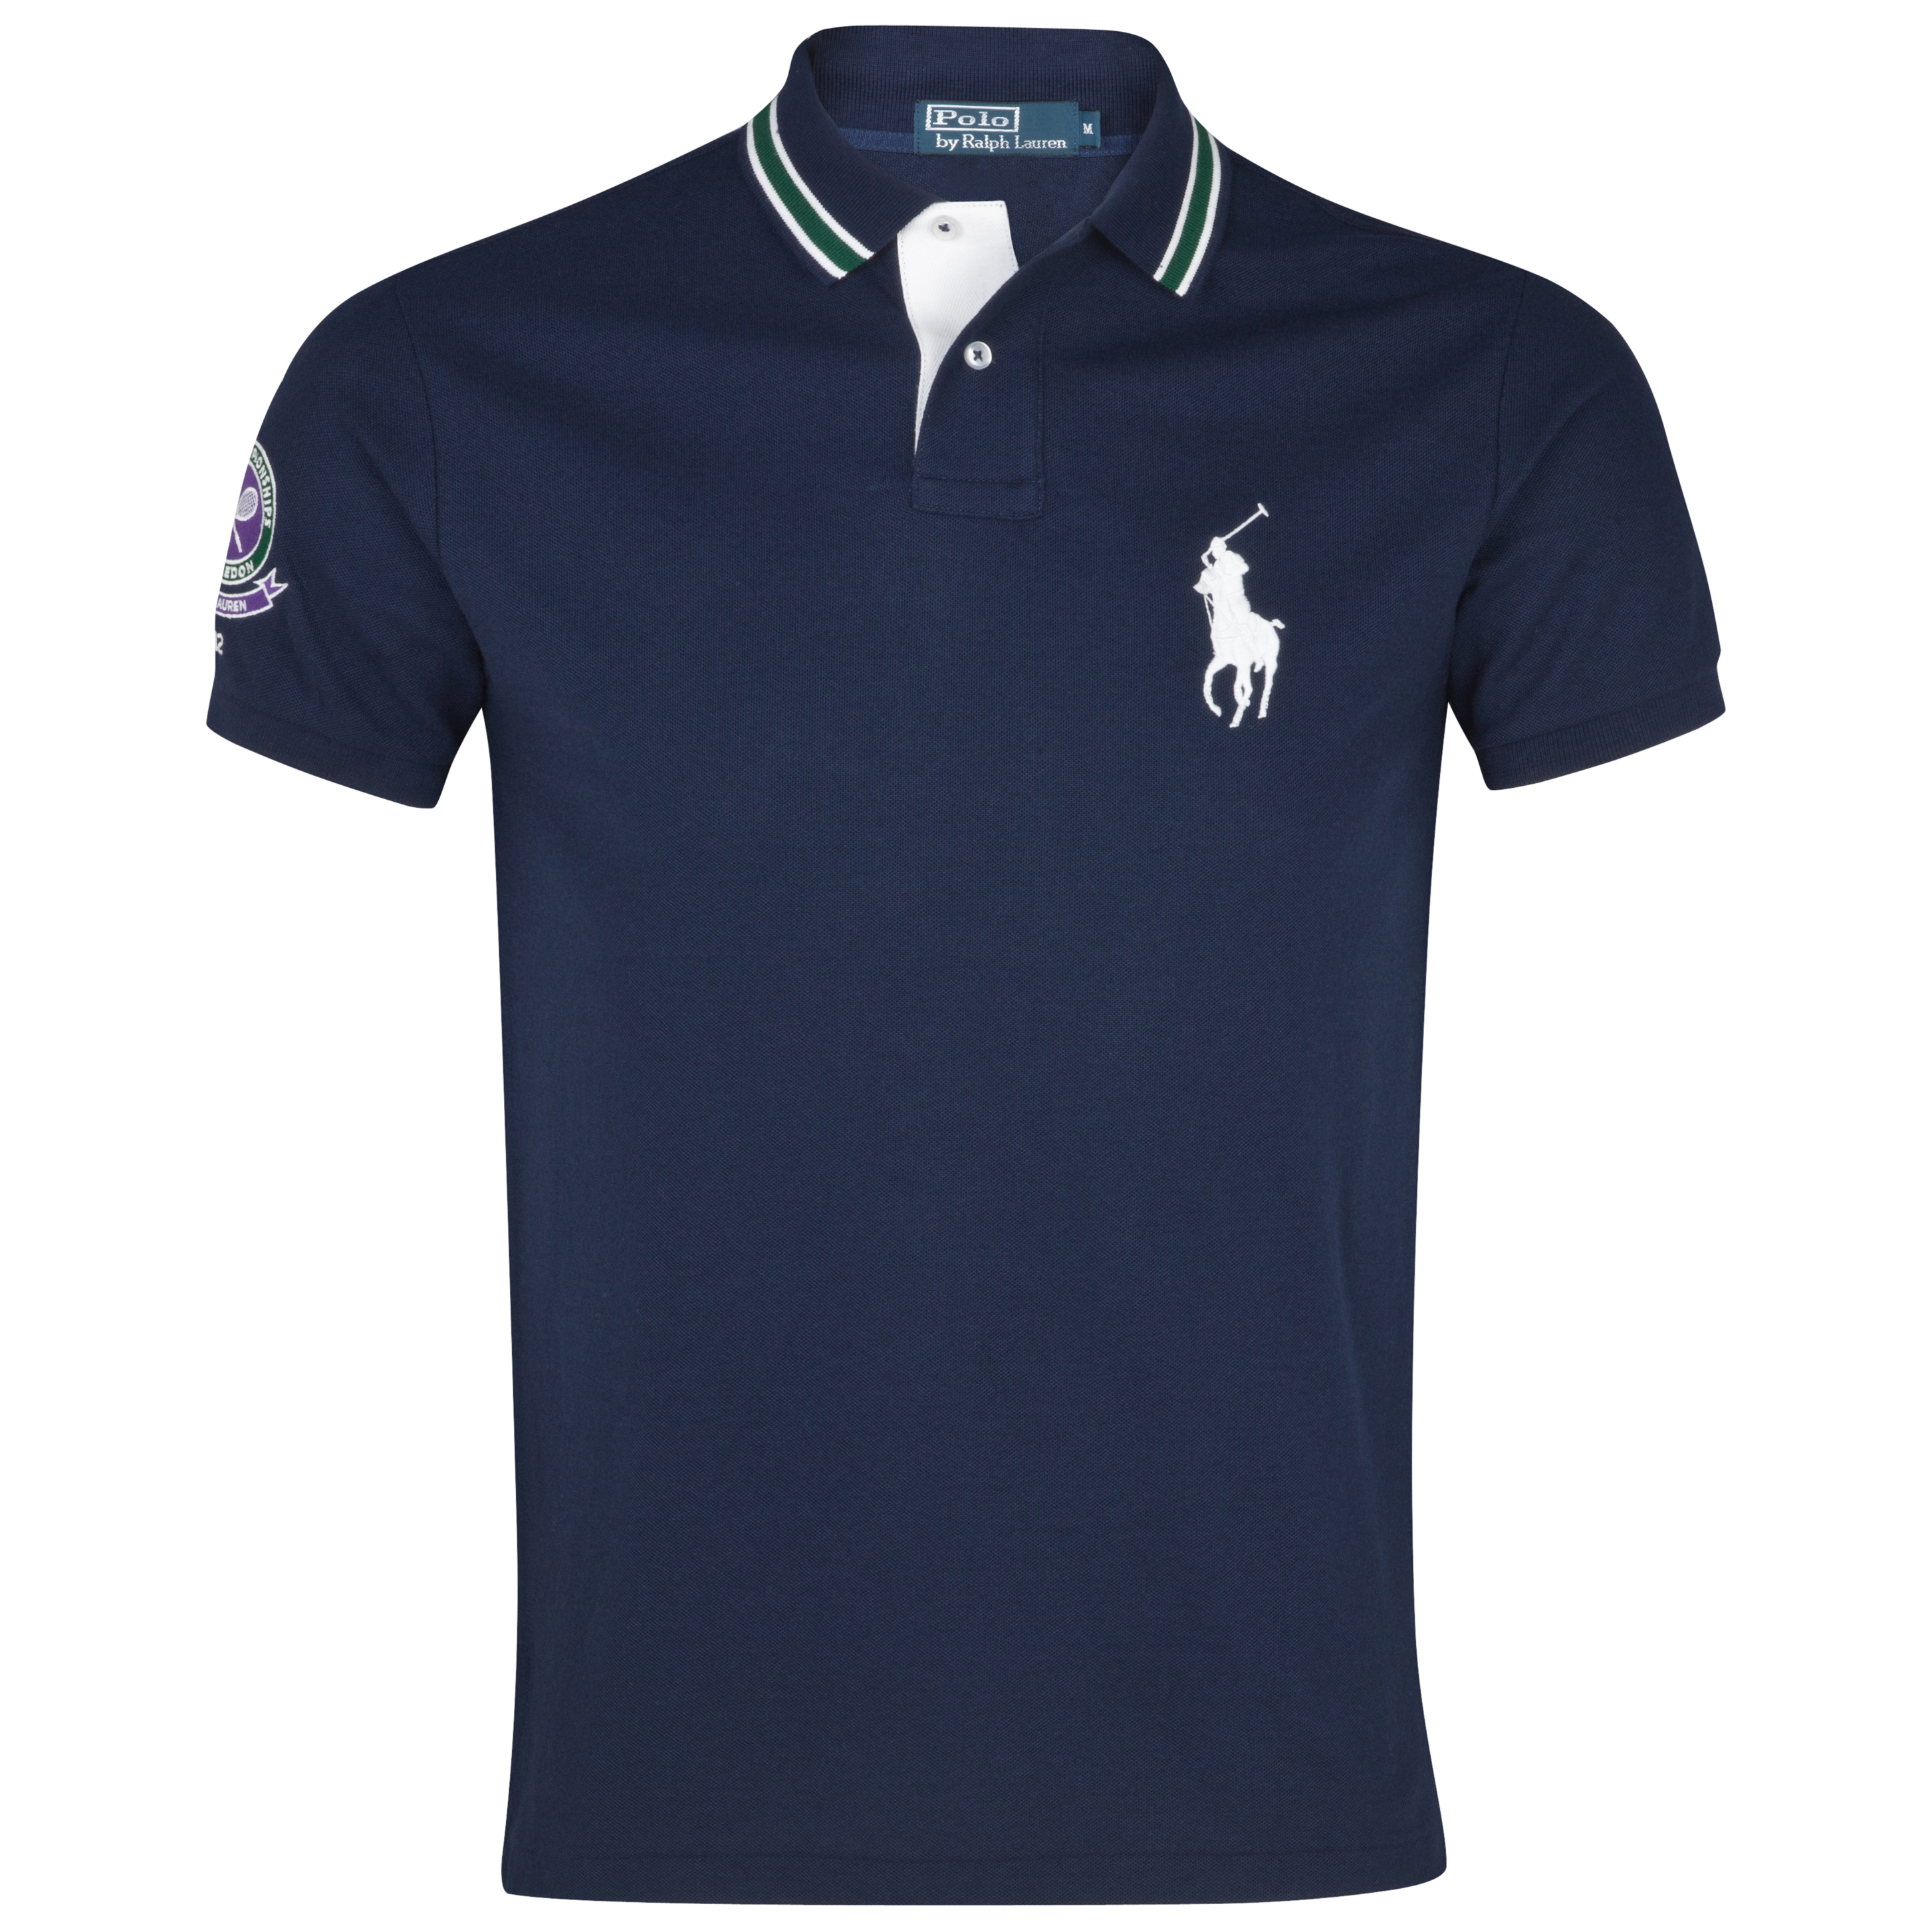 Polo Ralph Lauren Wimbledon Big PP Mesh Polo - Navy - Older Boys